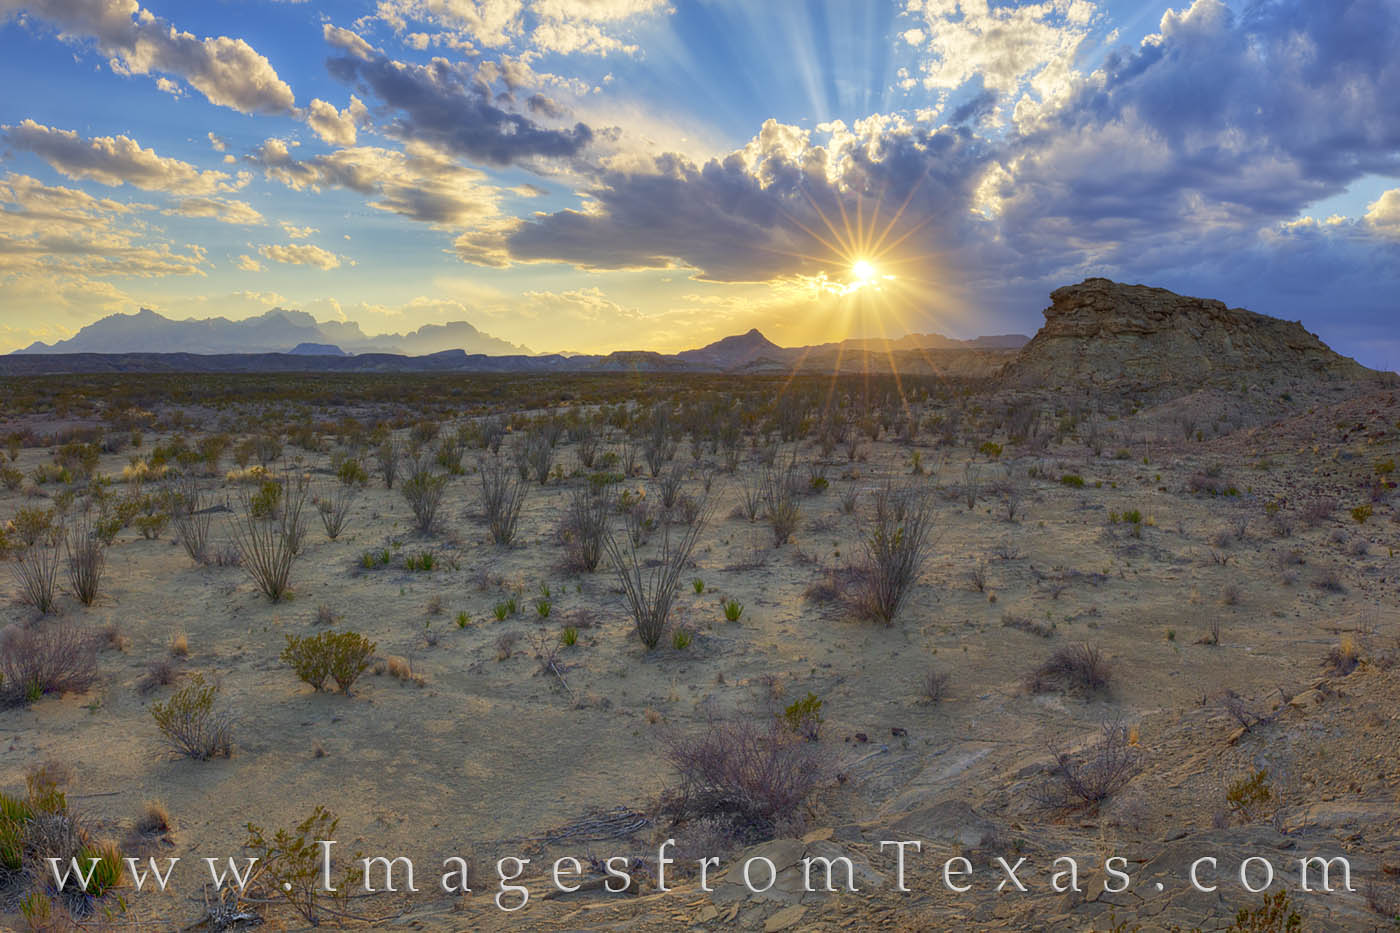 big bend, chisos mountains, hoodoos, chihuahuan desert, west texas, national parks, sunset, texas sunset, desert, texas mountains, chisos, photo